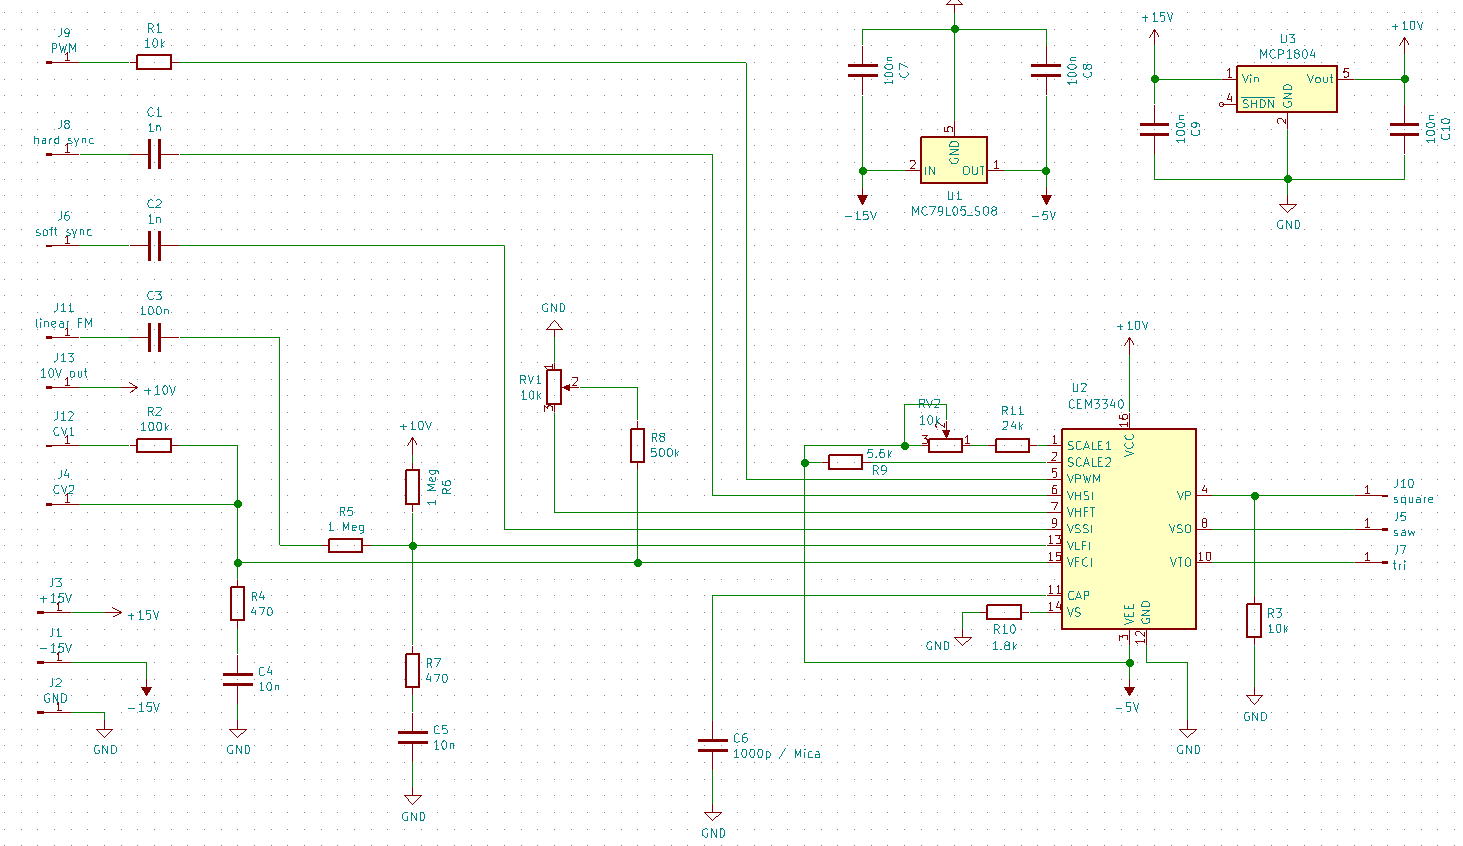 Transistor Replacement For Vco Page 1 Fish Simple Foil Circuits Series And Parallel Schematics Circuit Diagram Https Cdnhackadayio Images 1641441535289908627